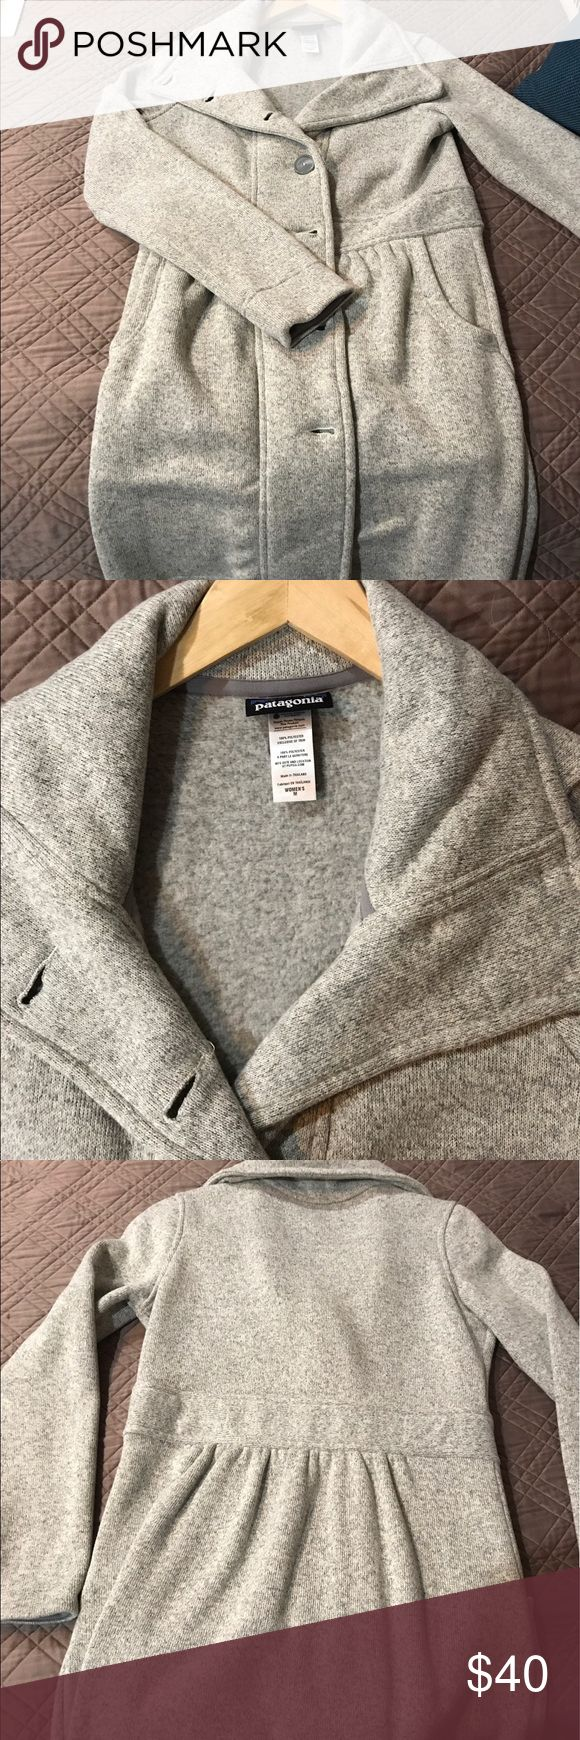 Patagonia Sweater Jacket Soft, heather gray, long Patagonia jacket. This sweater jacket is awesome with leggings and perfect for heading to yoga class! Patagonia Jackets & Coats